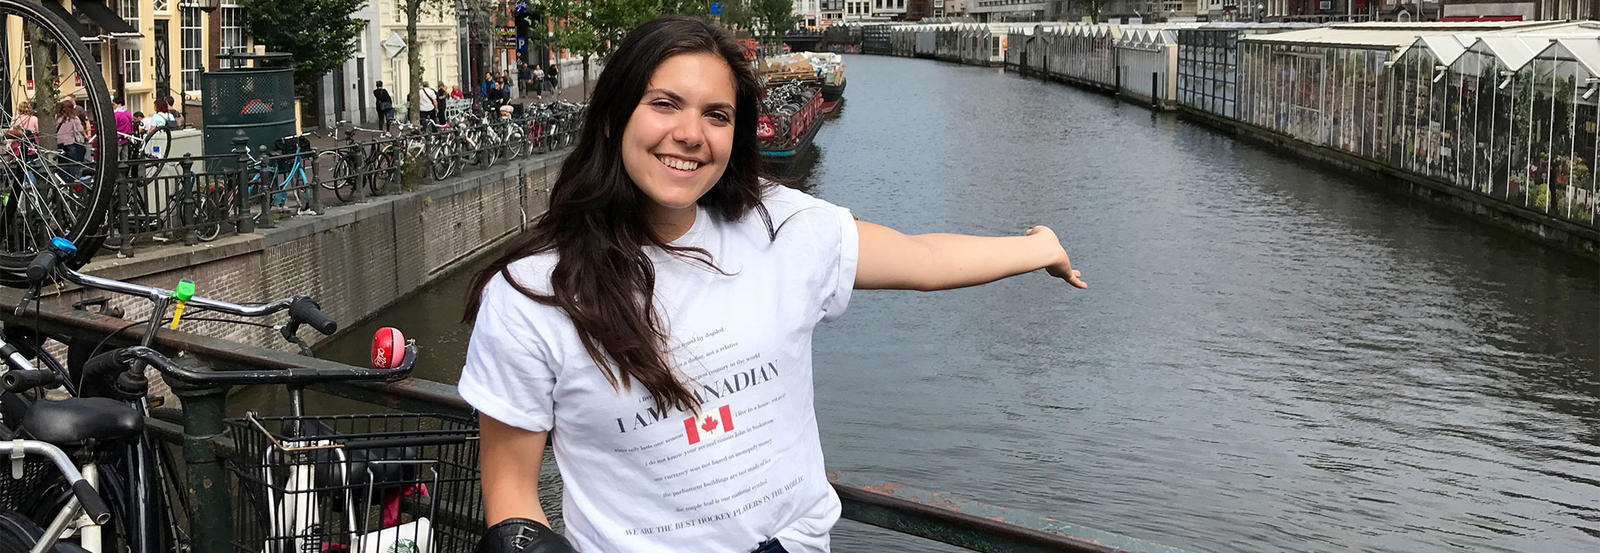 Student gesturing to the canal she is standing in front of.